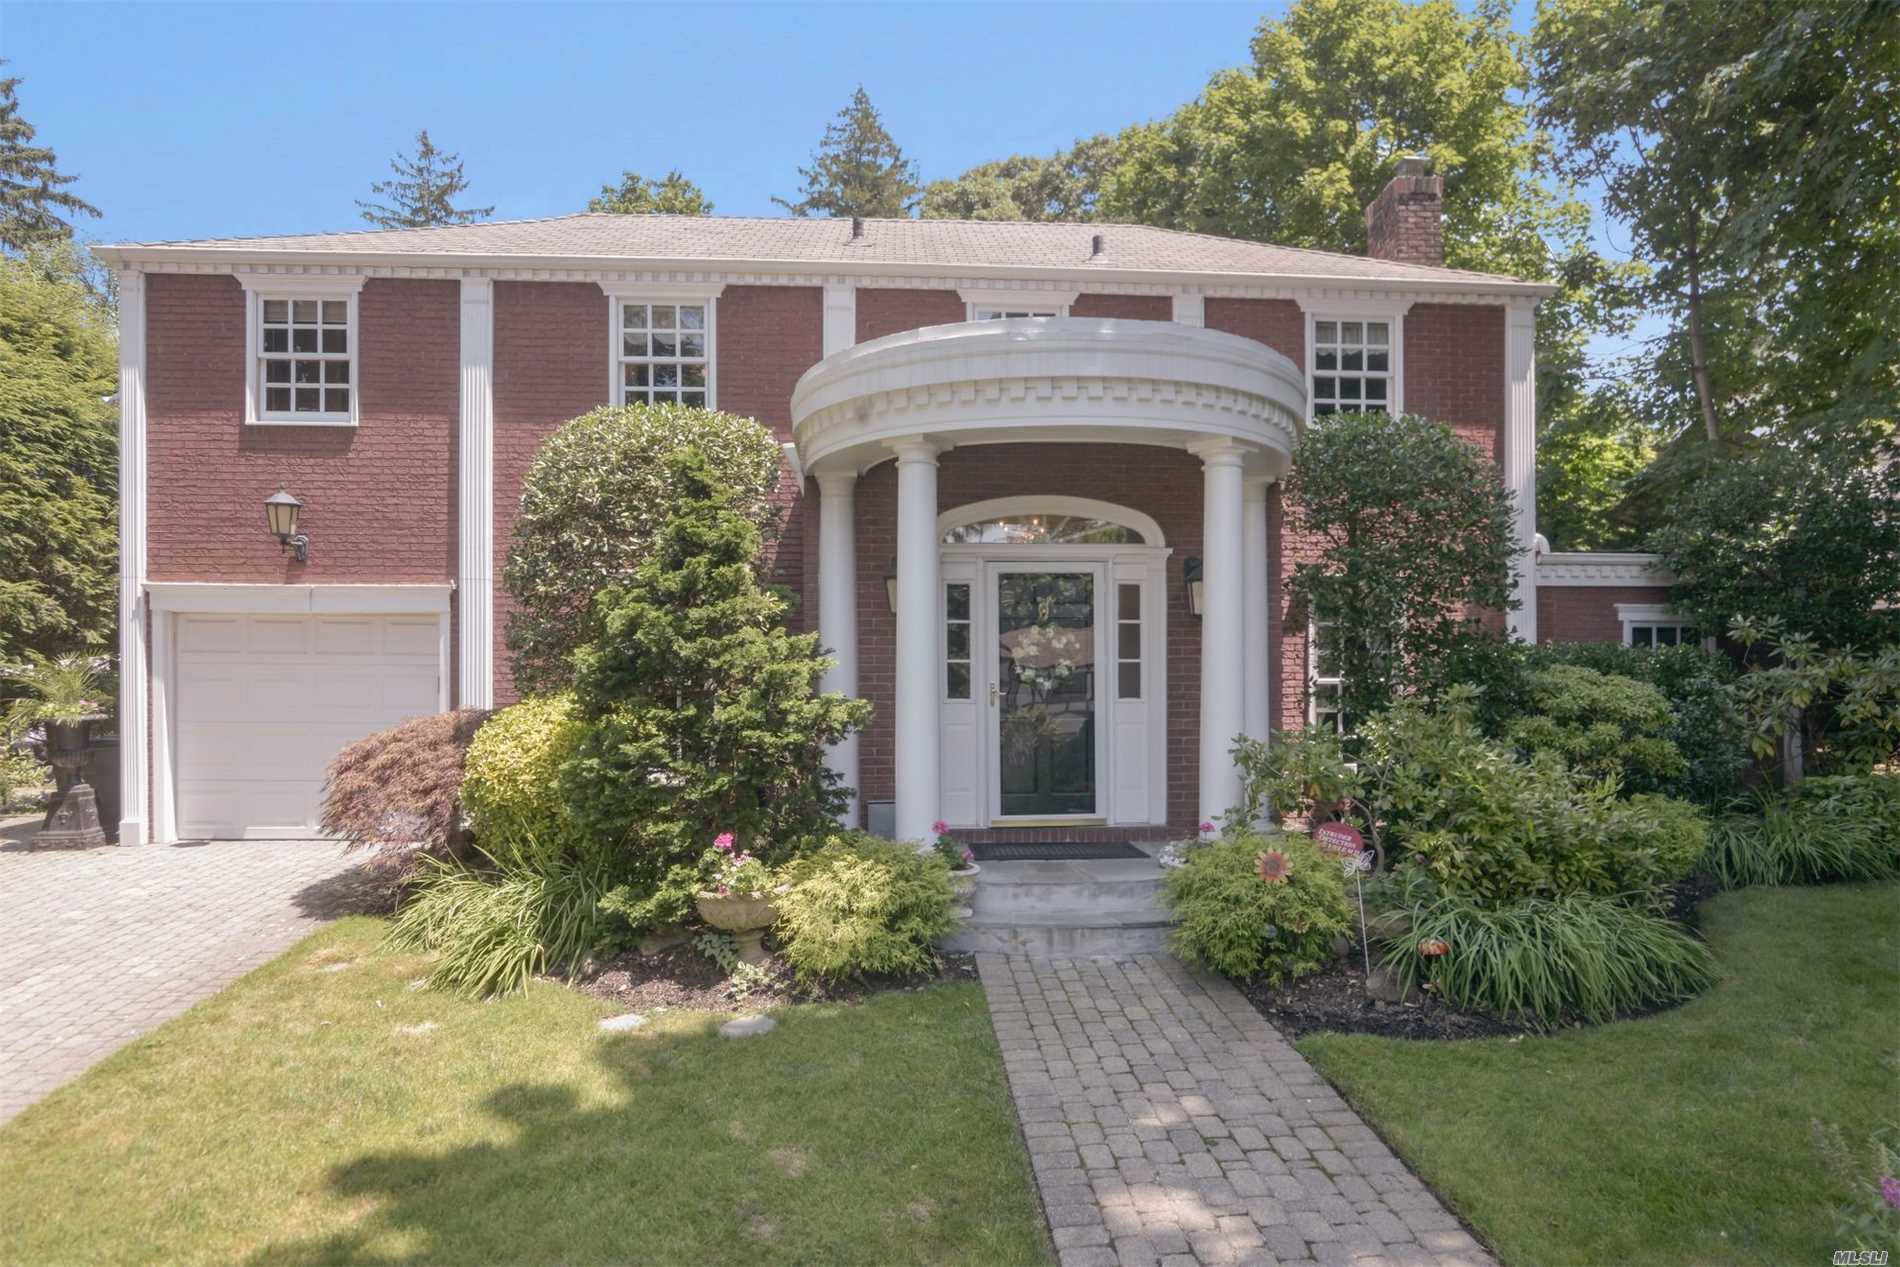 Brick/Stucco Colonial Set On Flat Property. Enjoy An Open Kitchen With Sunlit Exposure And Views To Spacious, Gorgeous Garden Lawn, Brick Outdoor Patio, Property Offers Plenty Of Space For Indoor And Outdoor Entertainment. Taxes Have Been Grieved And Have Been Reduced For 2018/2019 And 2019/2020